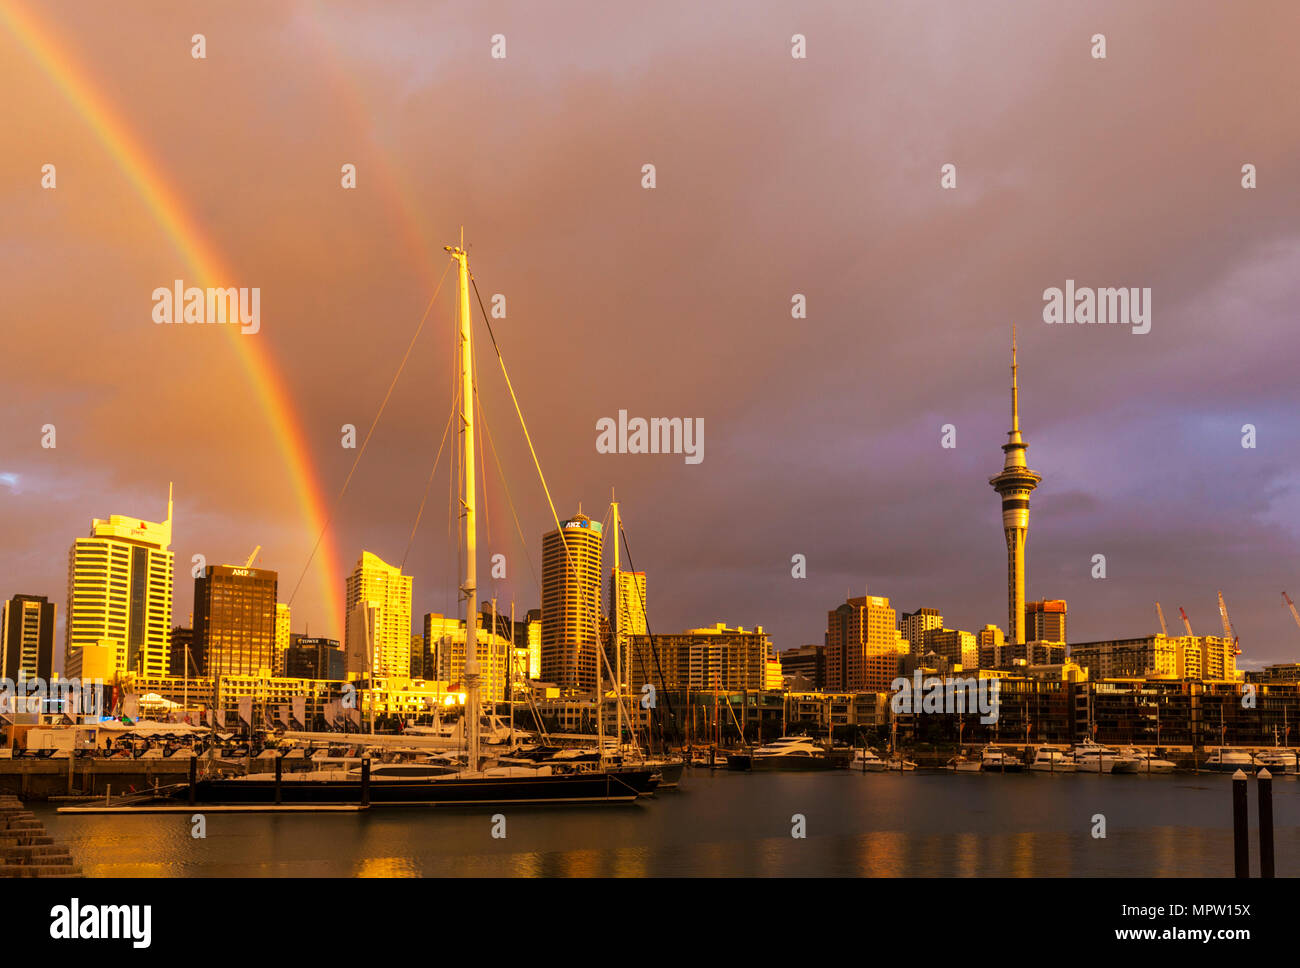 new zealand auckland new zealand north island rainbow after rain storm over auckland harbour waterfront weird colour sky stormy sky auckland nz Stock Photo